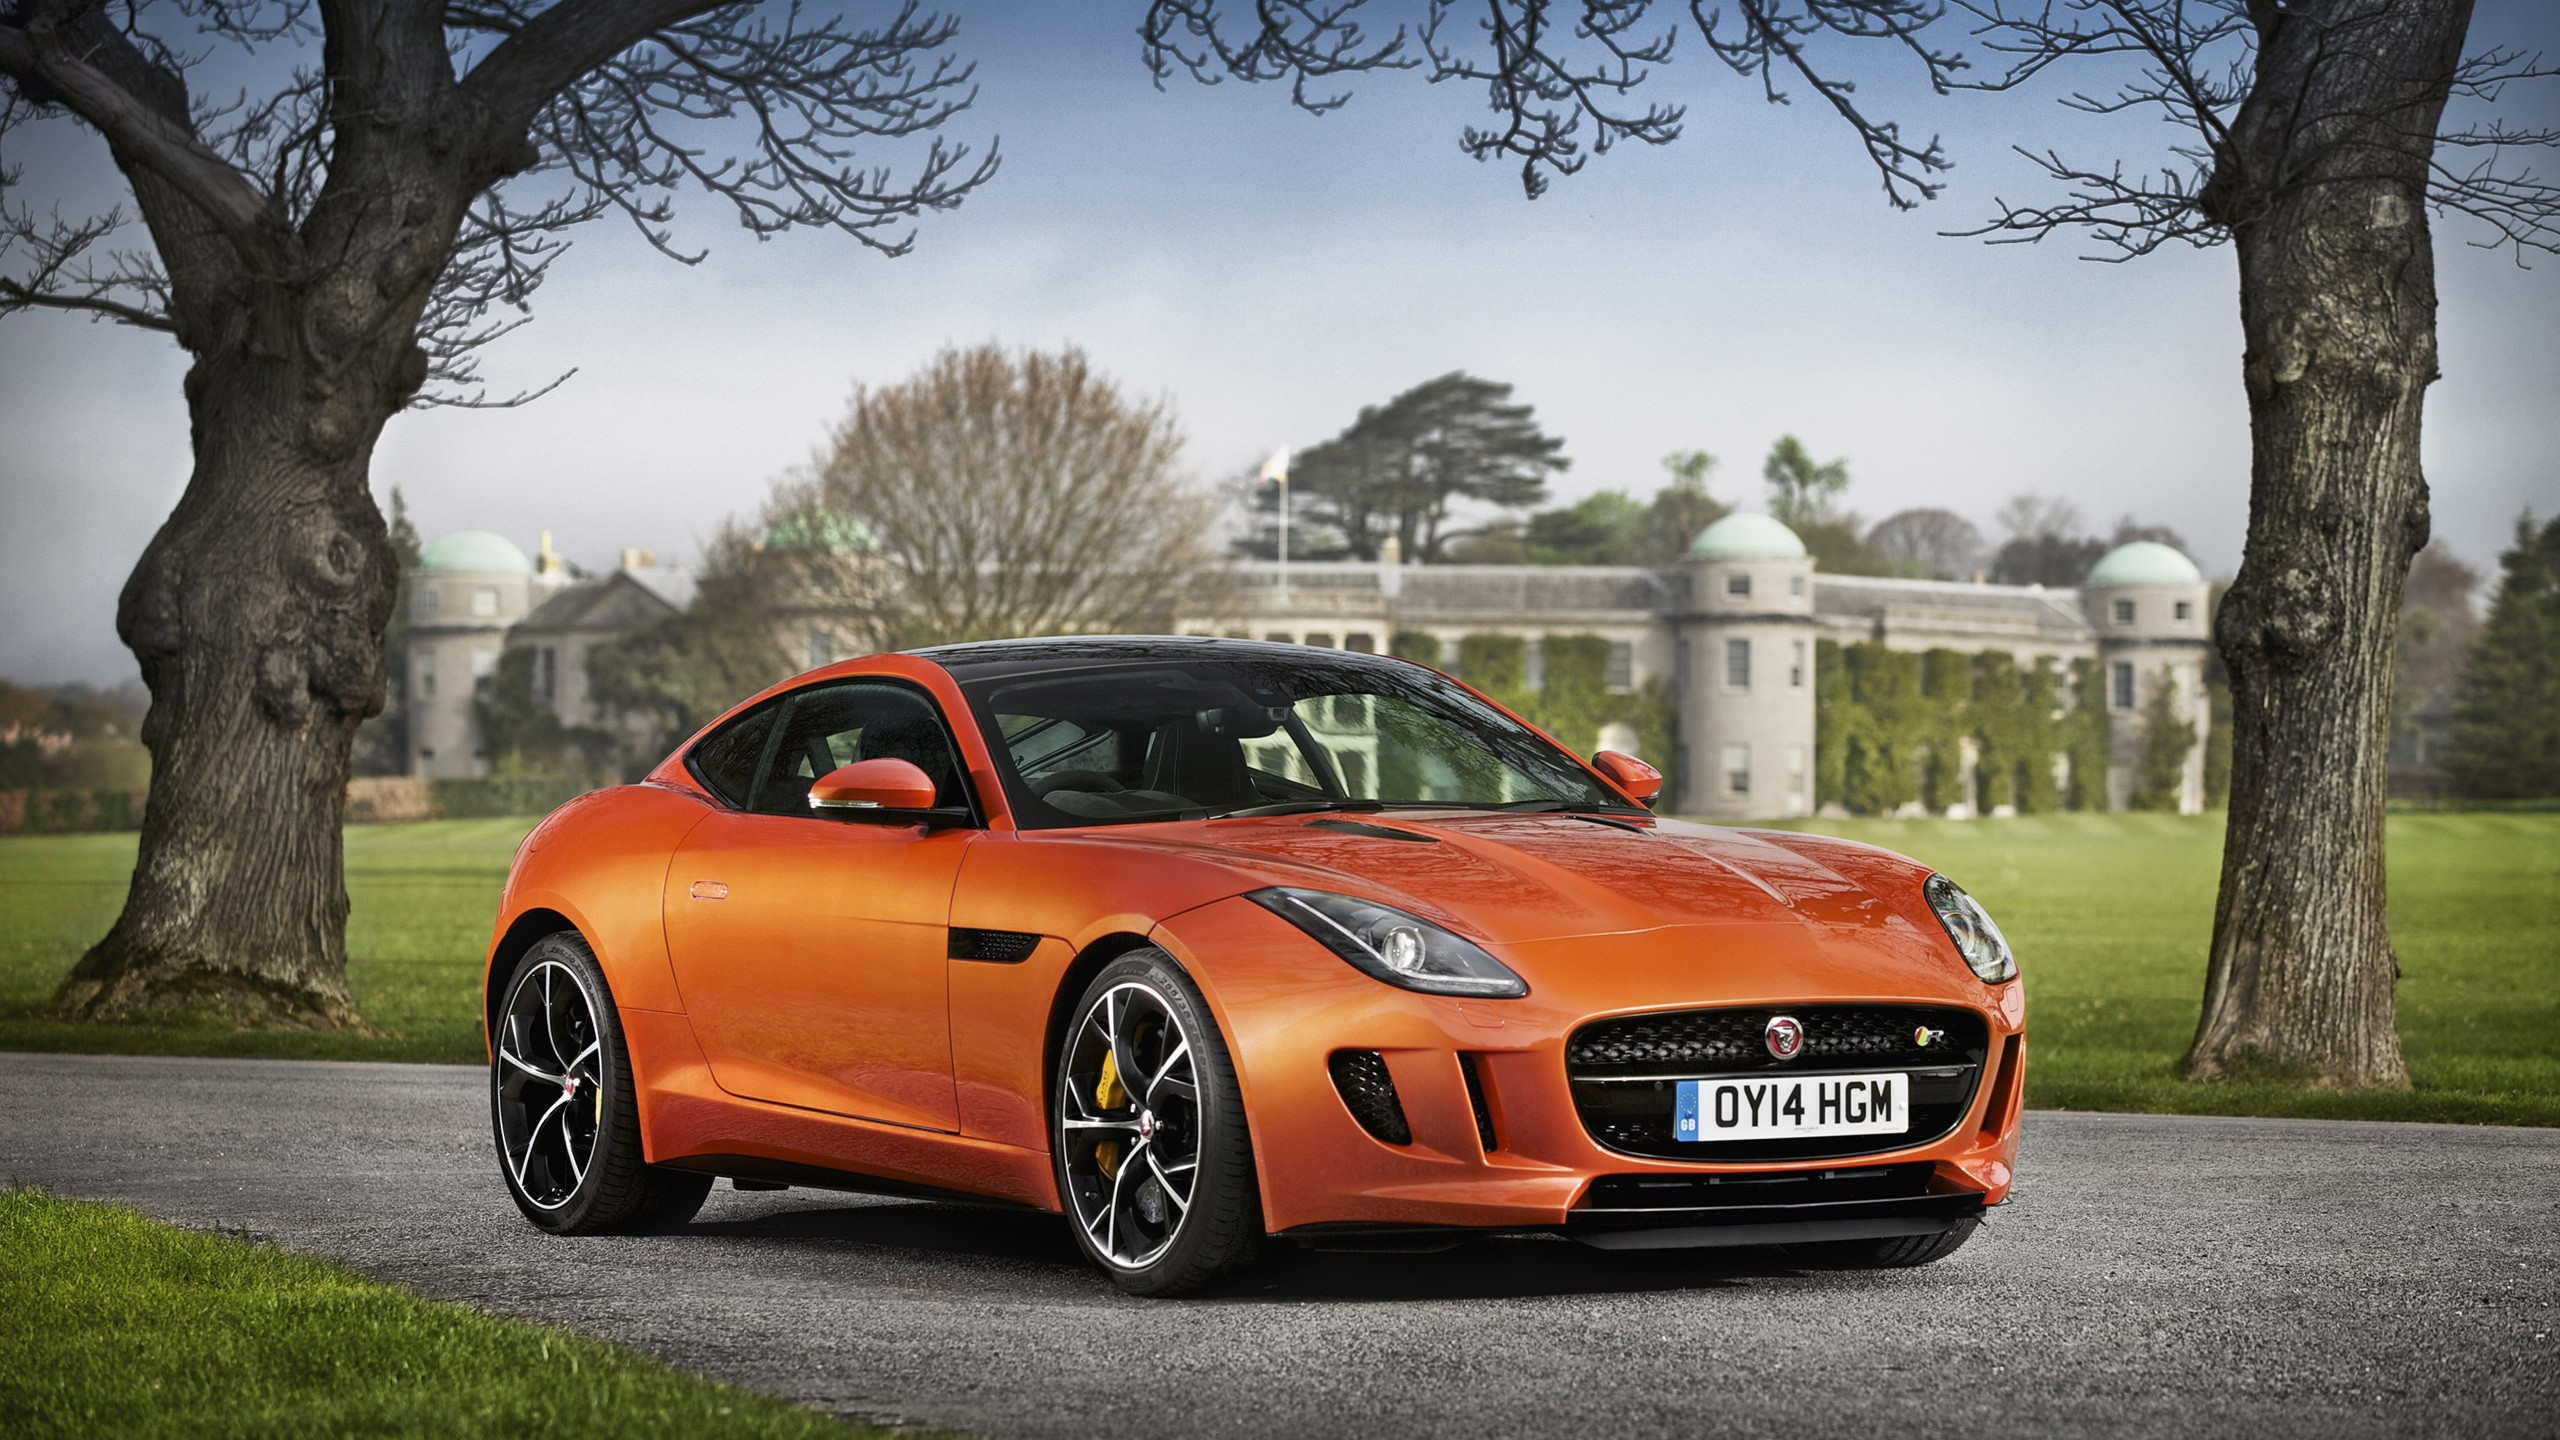 2014 jaguar f type r coupe 7 wallpaper hd car wallpapers. Black Bedroom Furniture Sets. Home Design Ideas